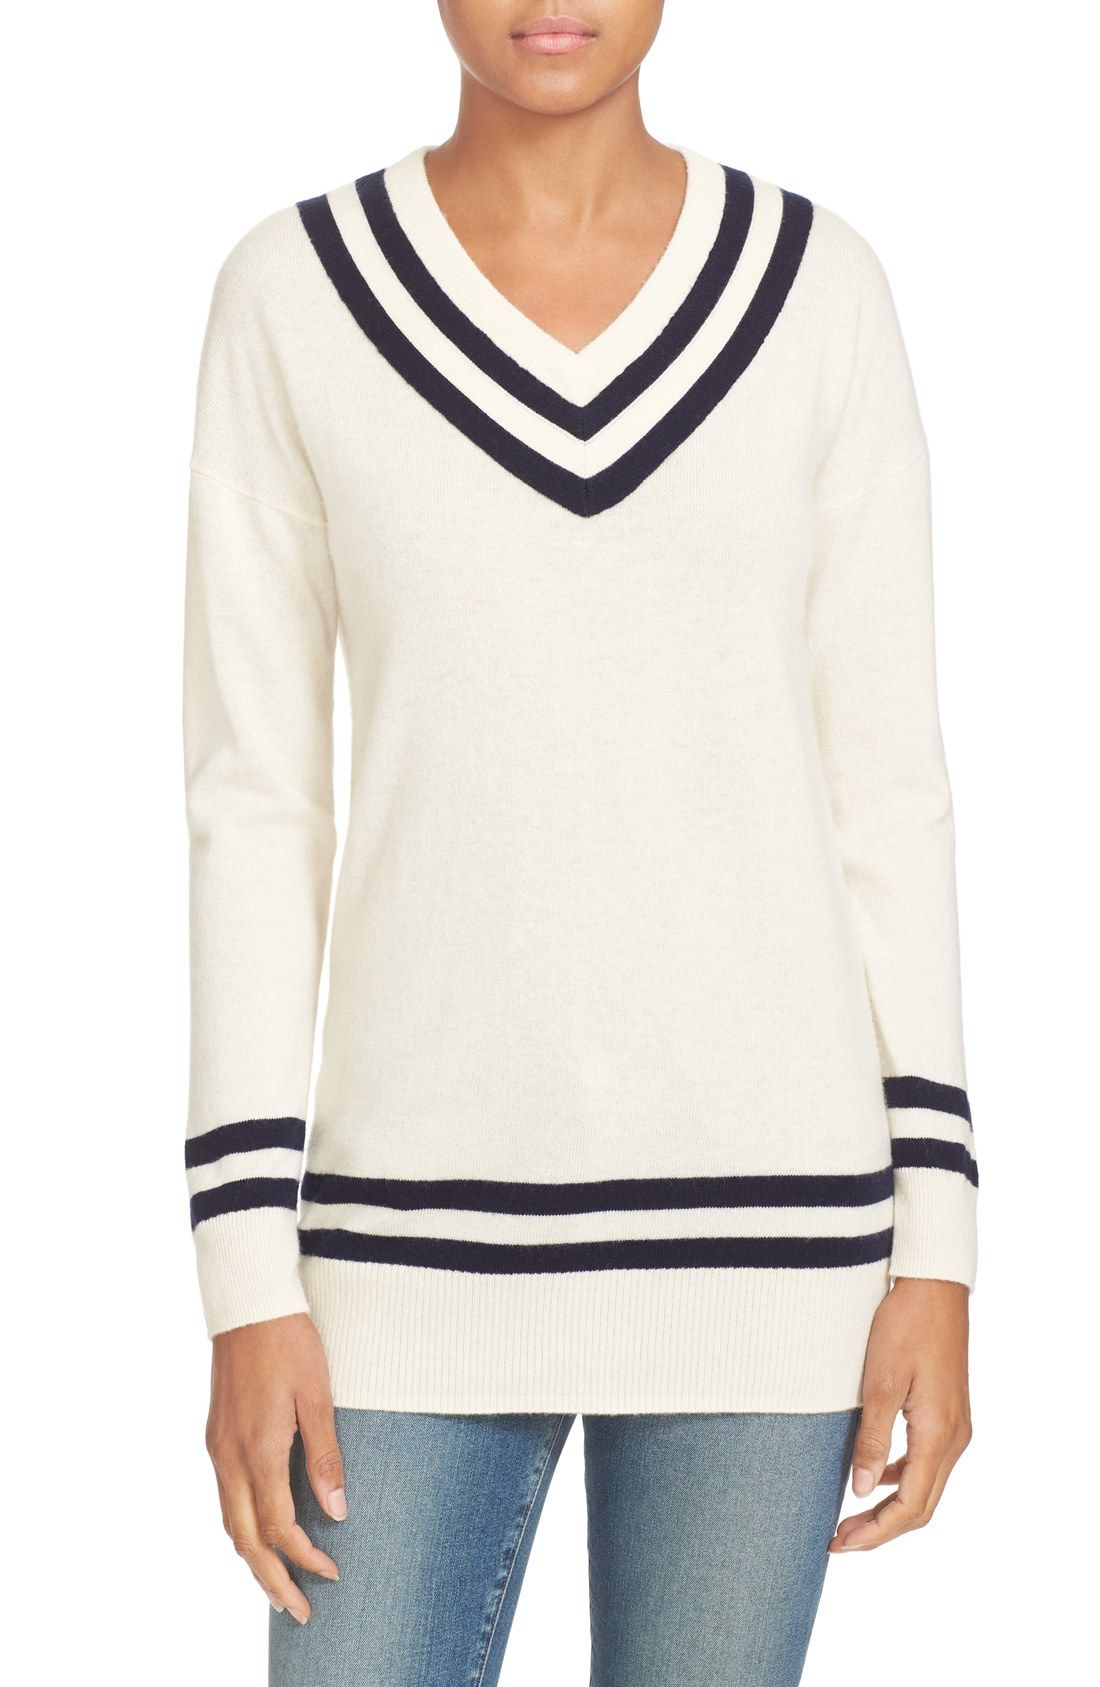 SALE ALERT // ivory v-neck summer sweater with navy varsity ...